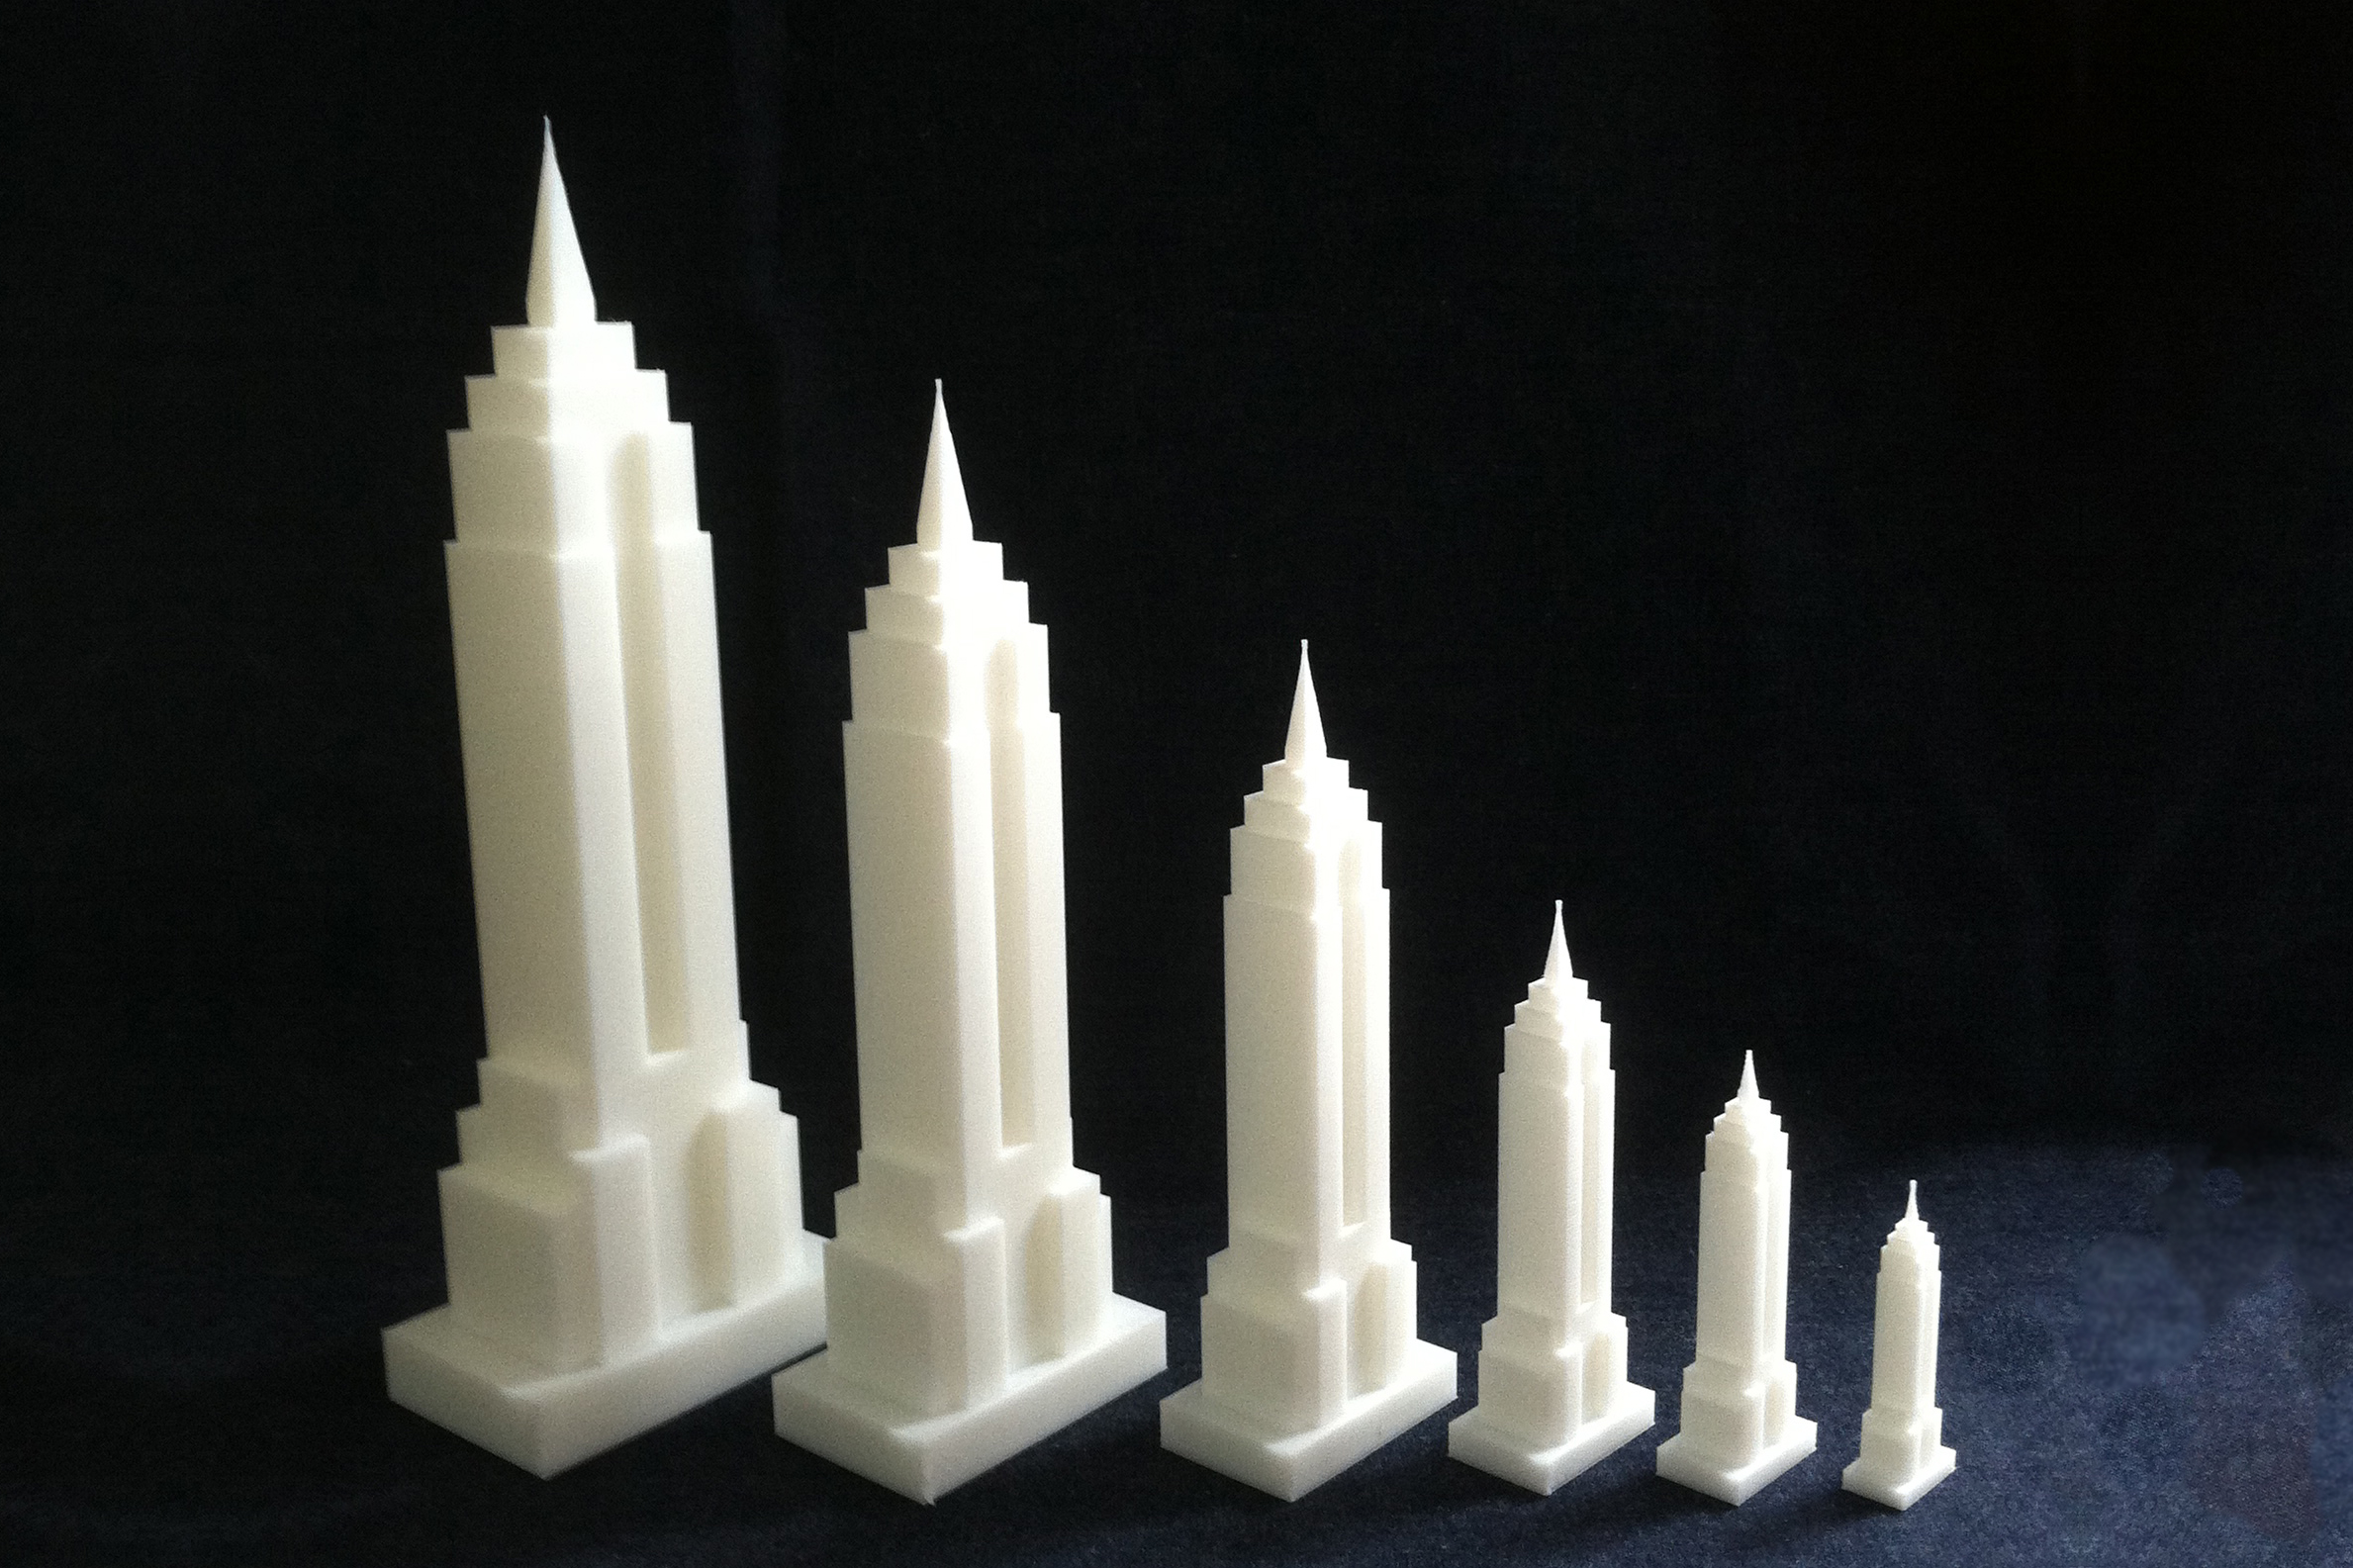 An example of our 3D printing capabilities. Check out our portfolio to see more.